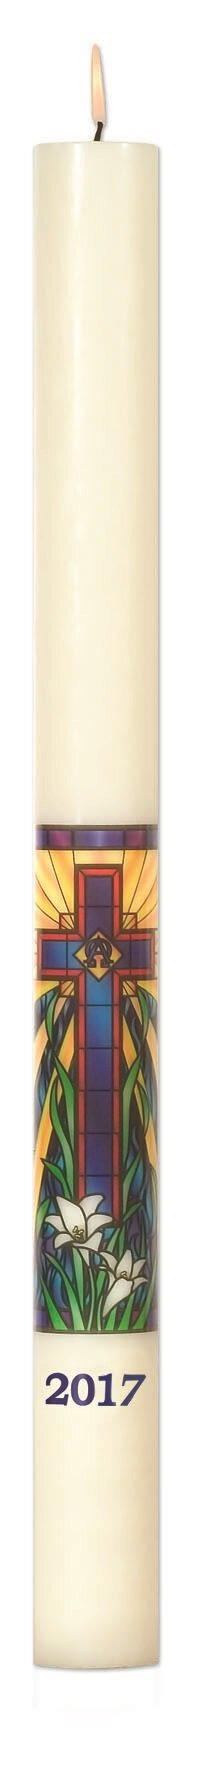 No 11 Radiant Light Mosaic Paschal Candle